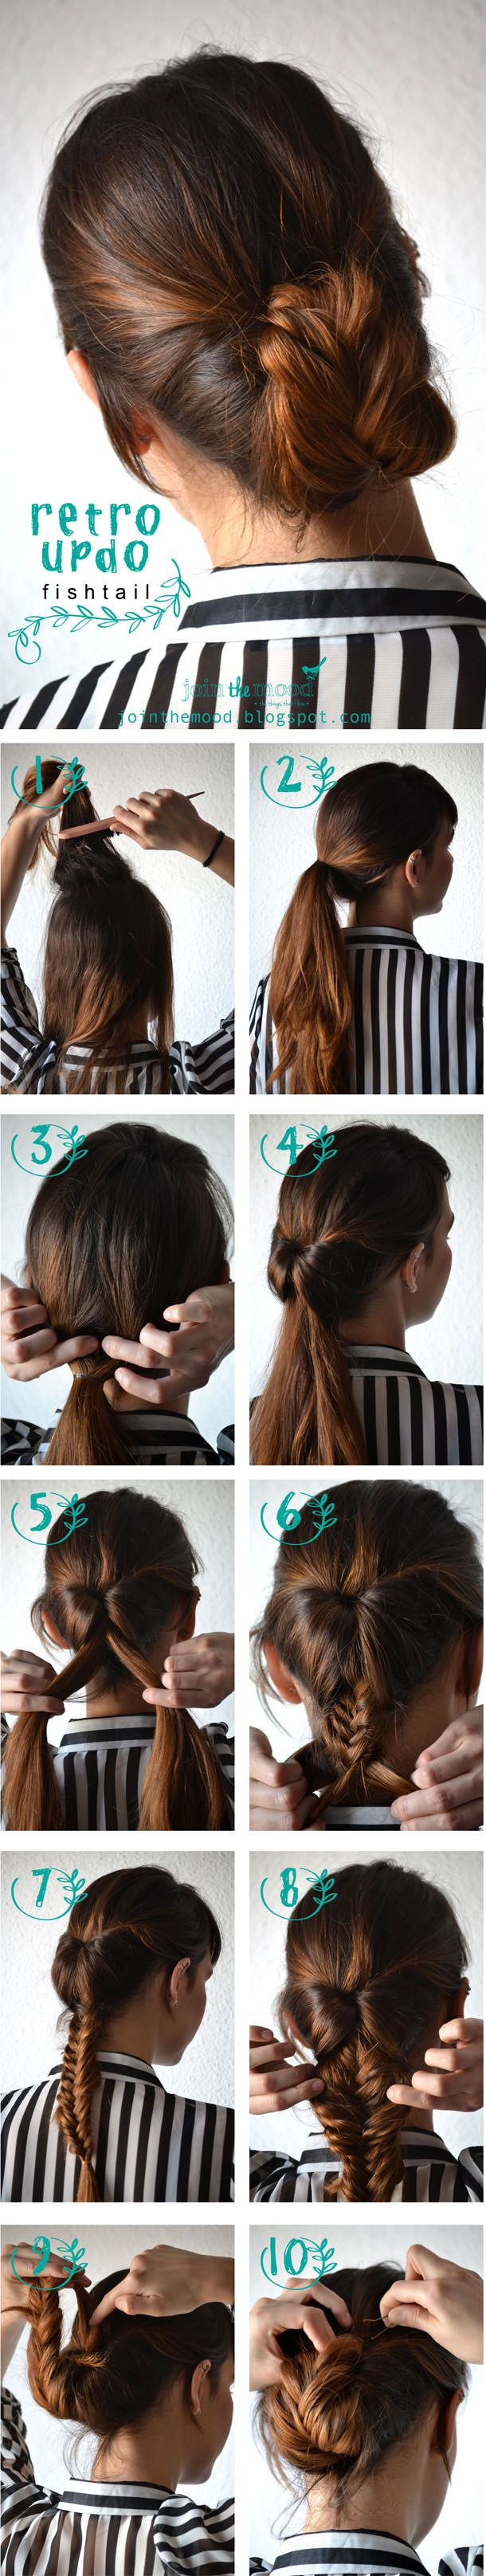 Fast and Fabulous: 6 Easy Updos You Can Recreate in Minutes | Latest-Hairstyles.com